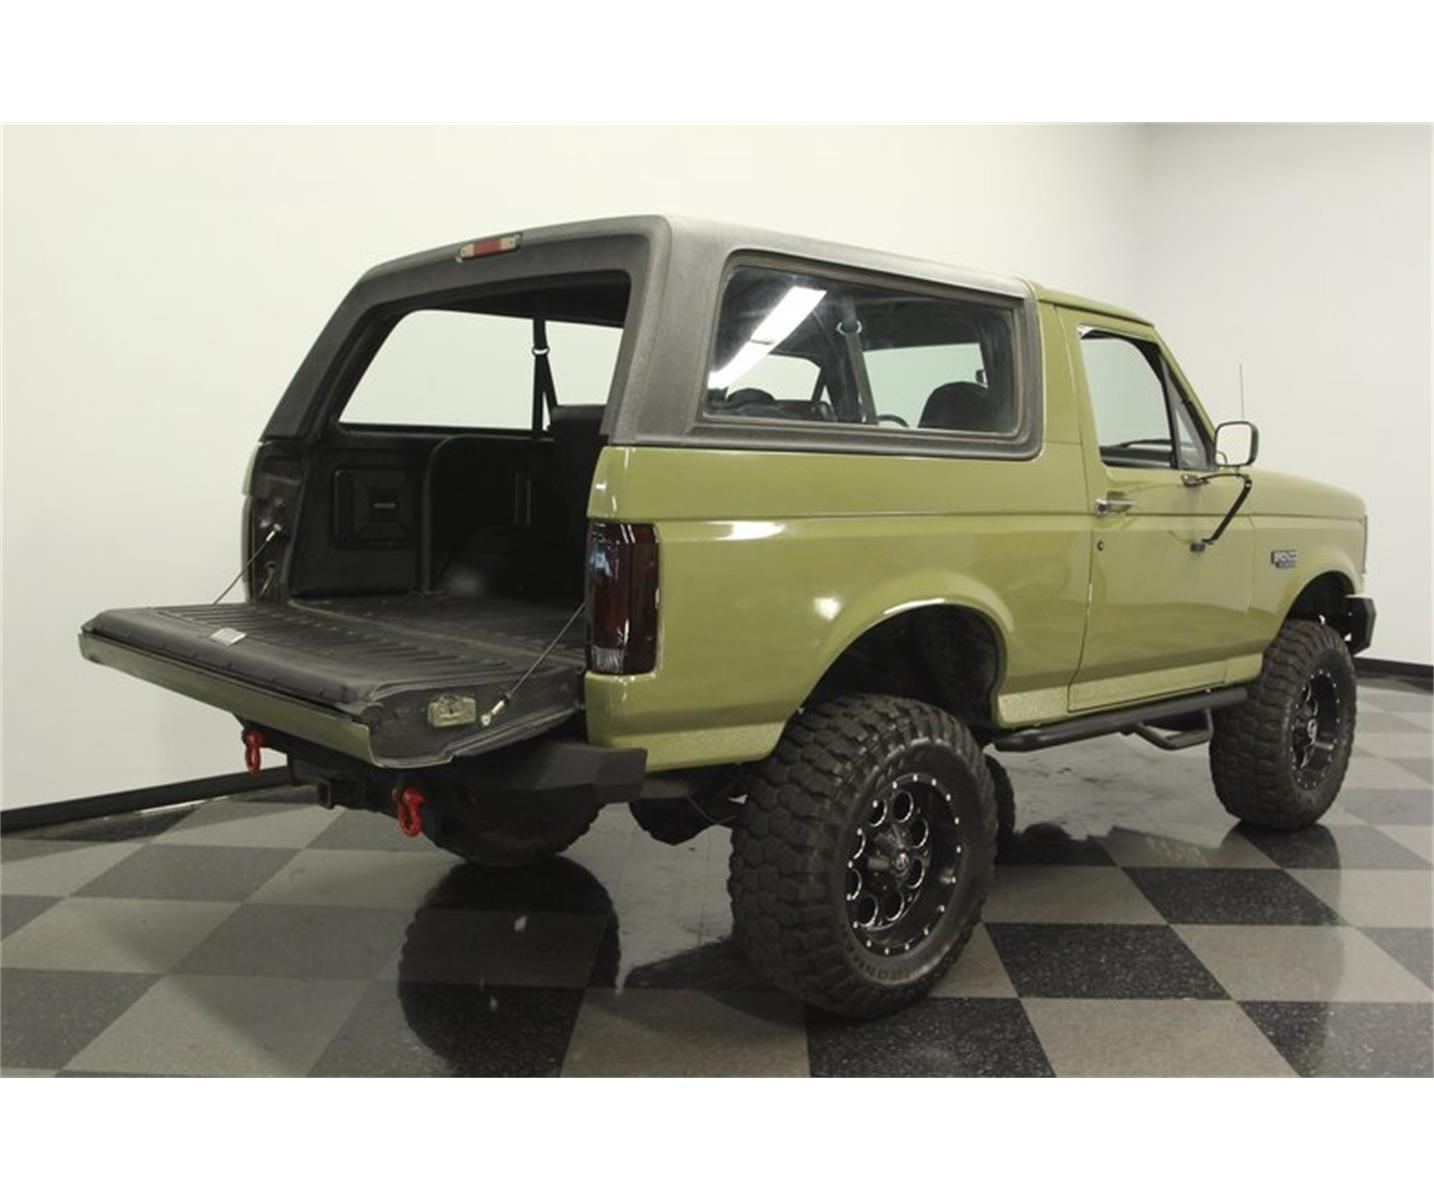 1996 Ford Bronco (CC1230115) for sale in Lutz, Florida in